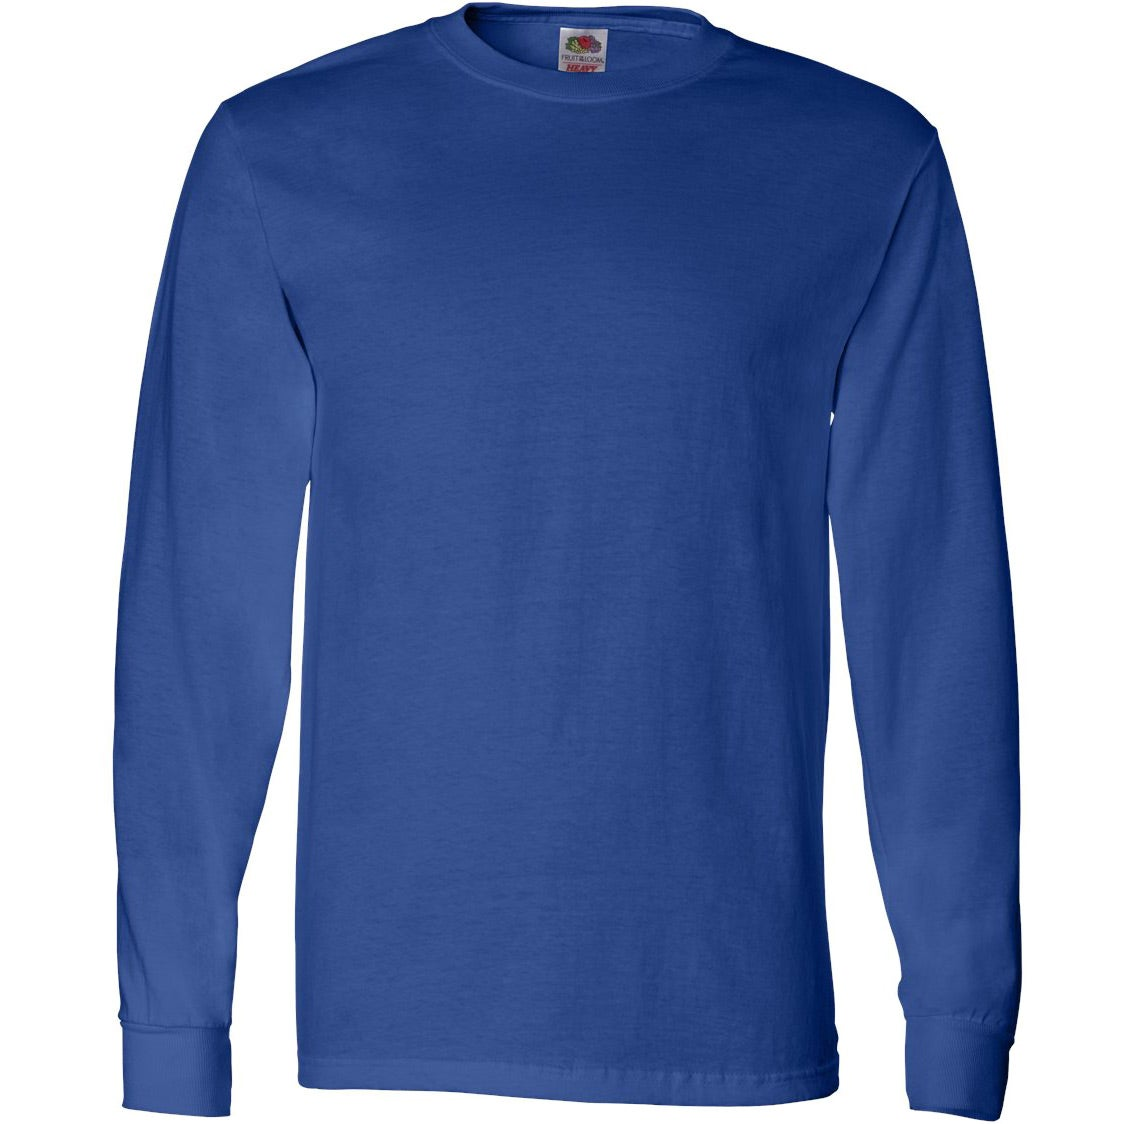 Custom fruit of the loom long sleeve cotton t shirt for Personalized long sleeve t shirts